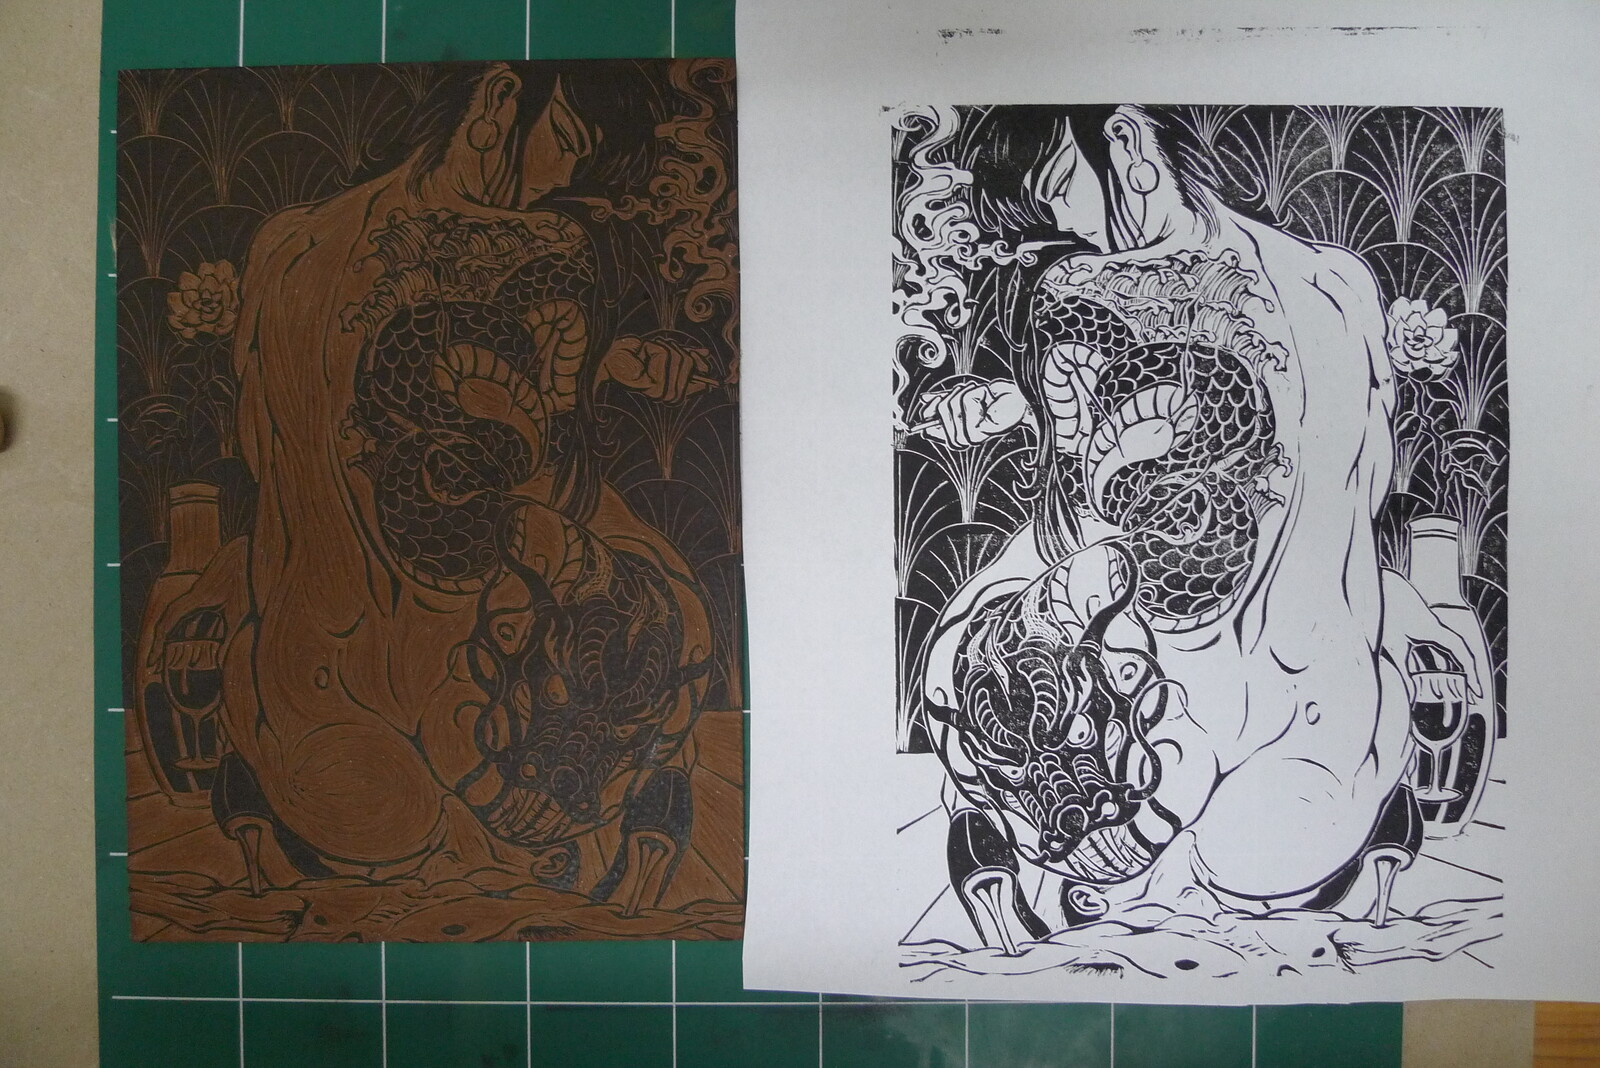 Test print with the linocut